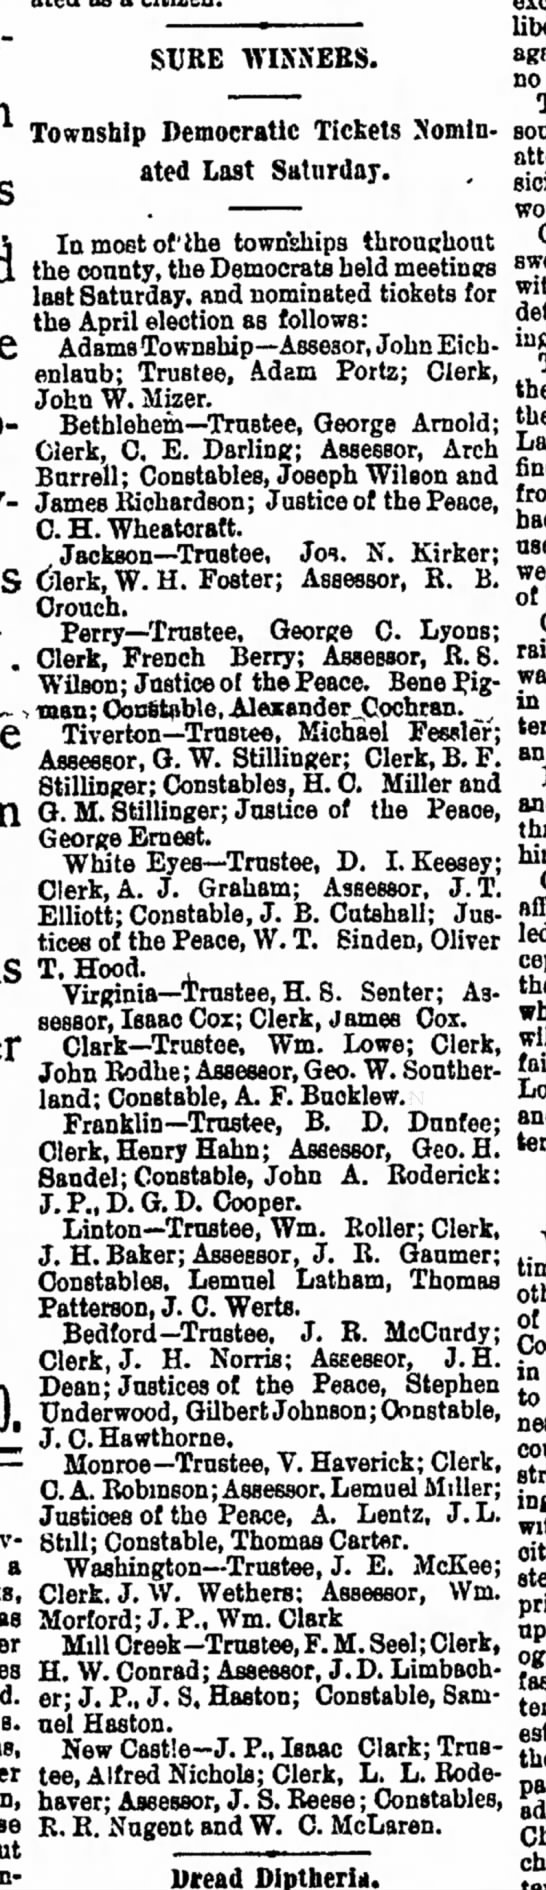 Justice of the Peace - William Thomas Sinden, The Democratic Standard, 16 Mar 1894, p. 1 - it on has are ob- SURE WINNERS again, the M)Kt...